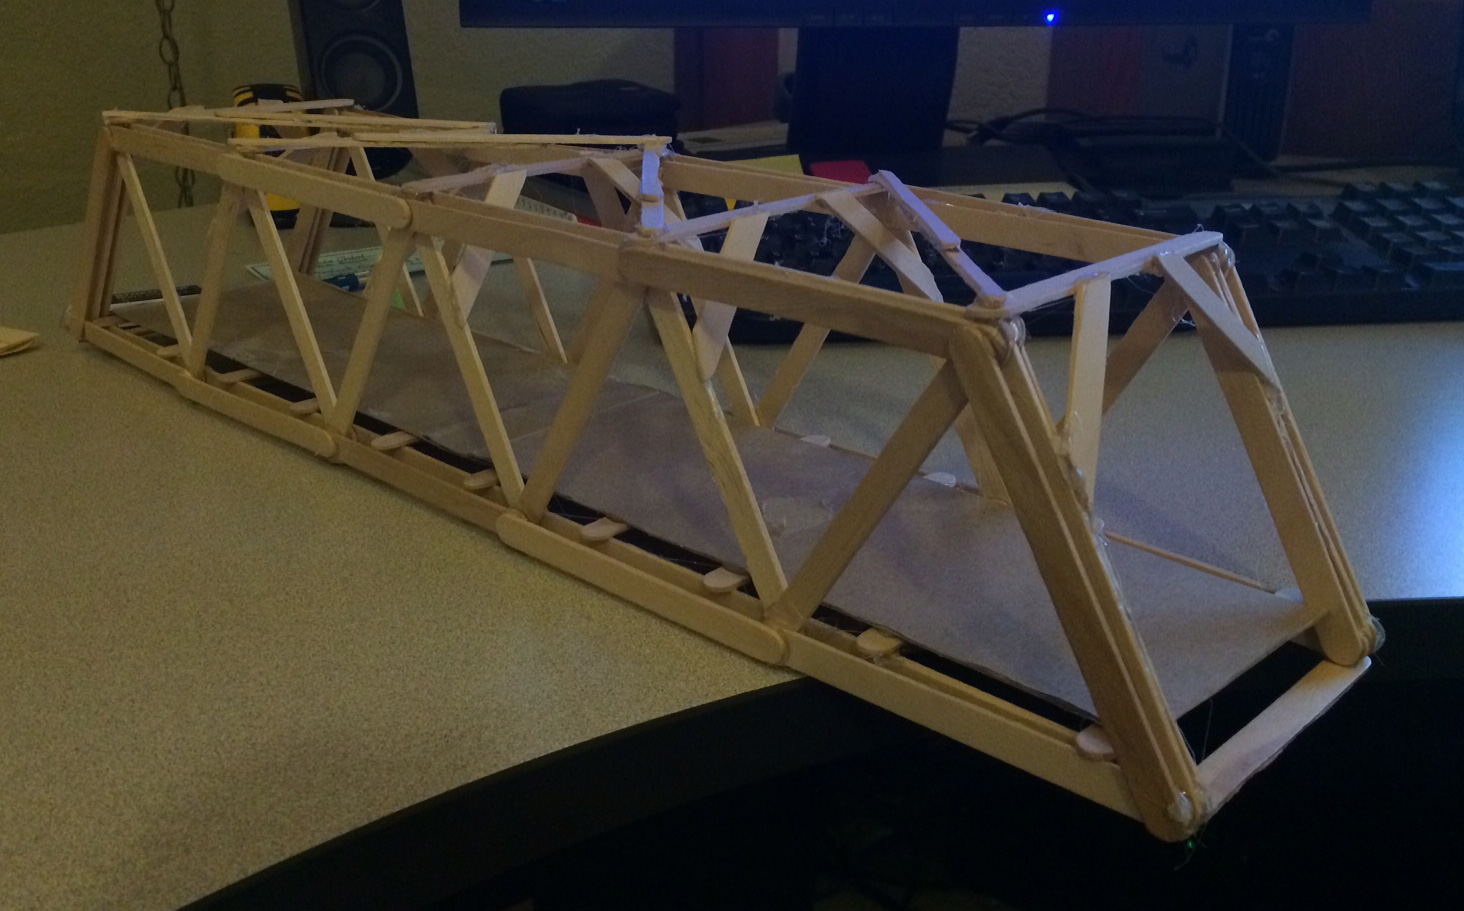 Popsicle Stick Bridge Designs That Can Hold Weight | www ...